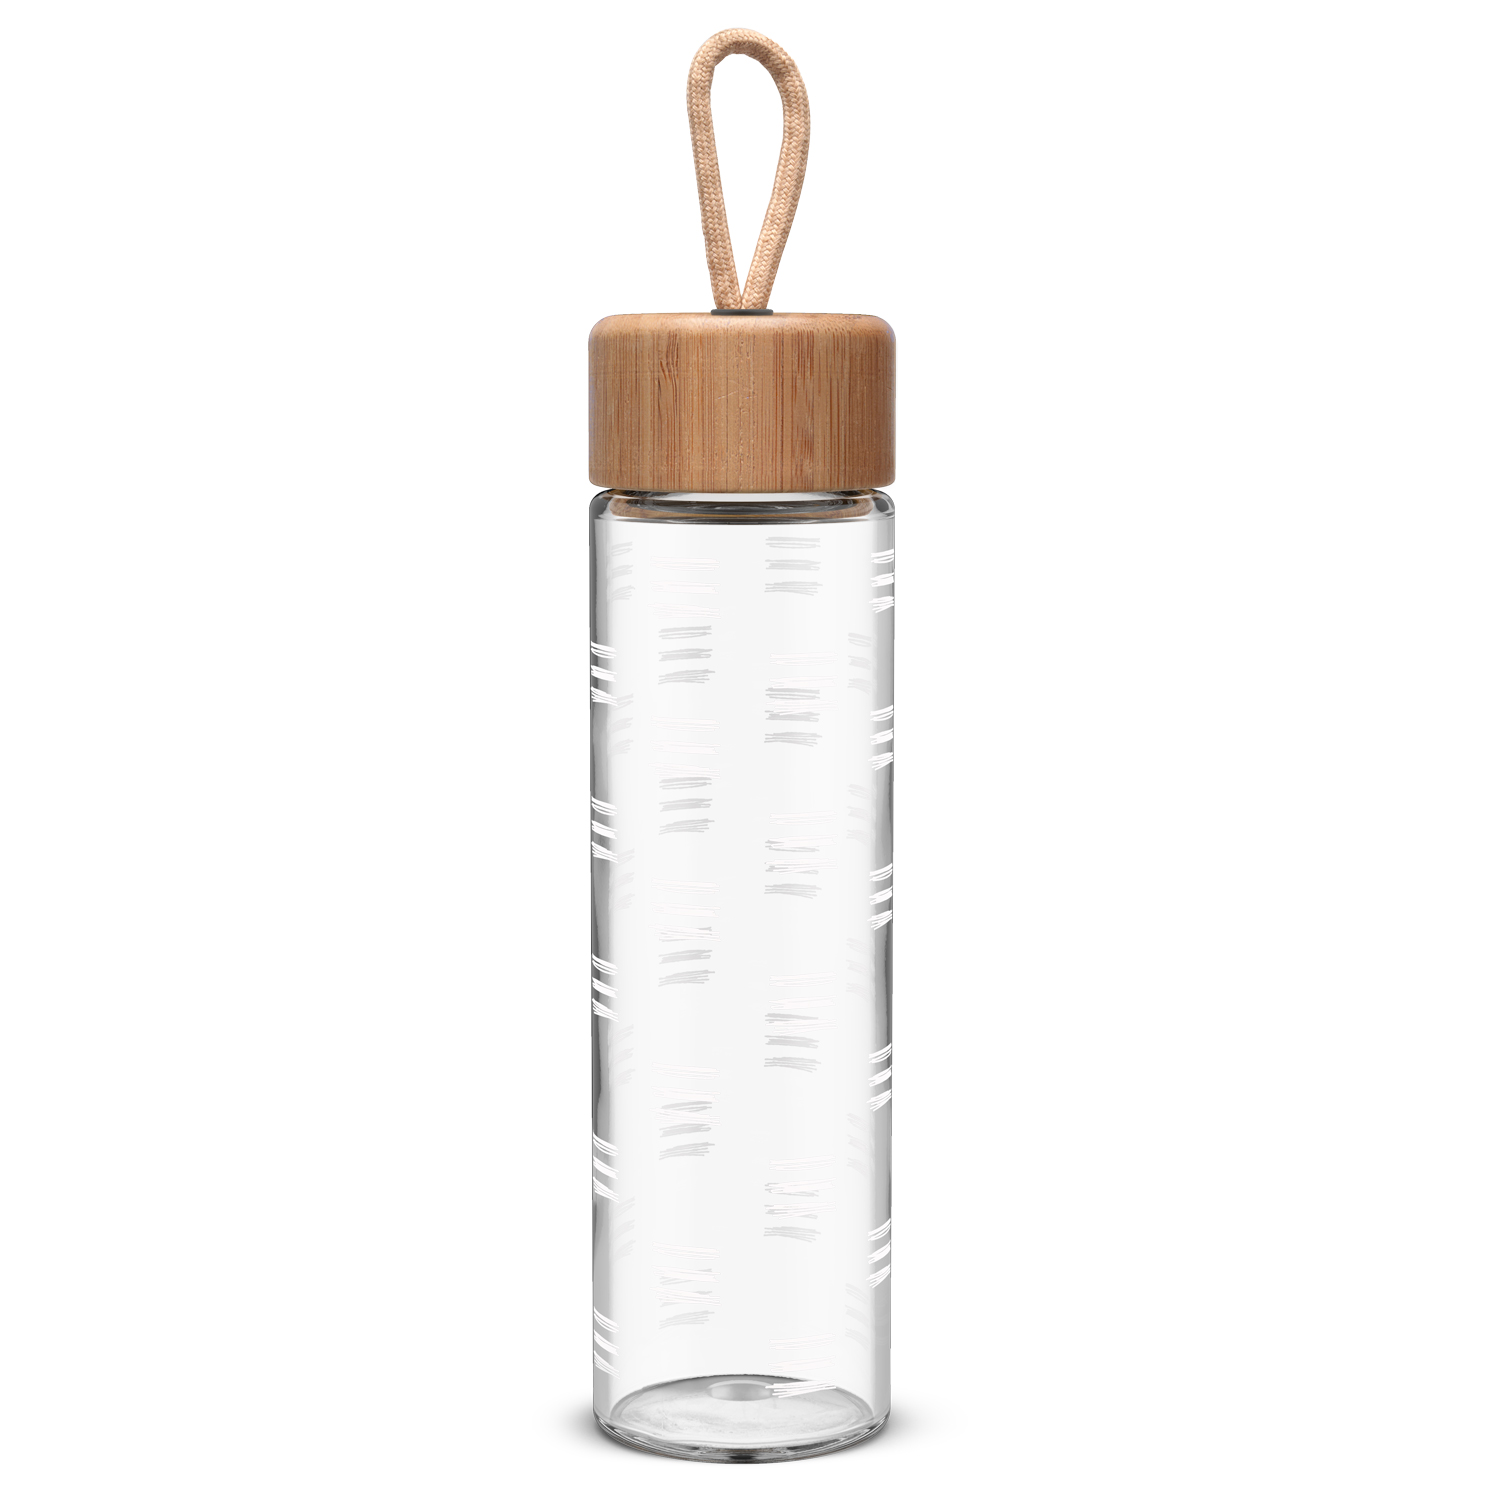 Thrive 20oz Glass Water Bottle